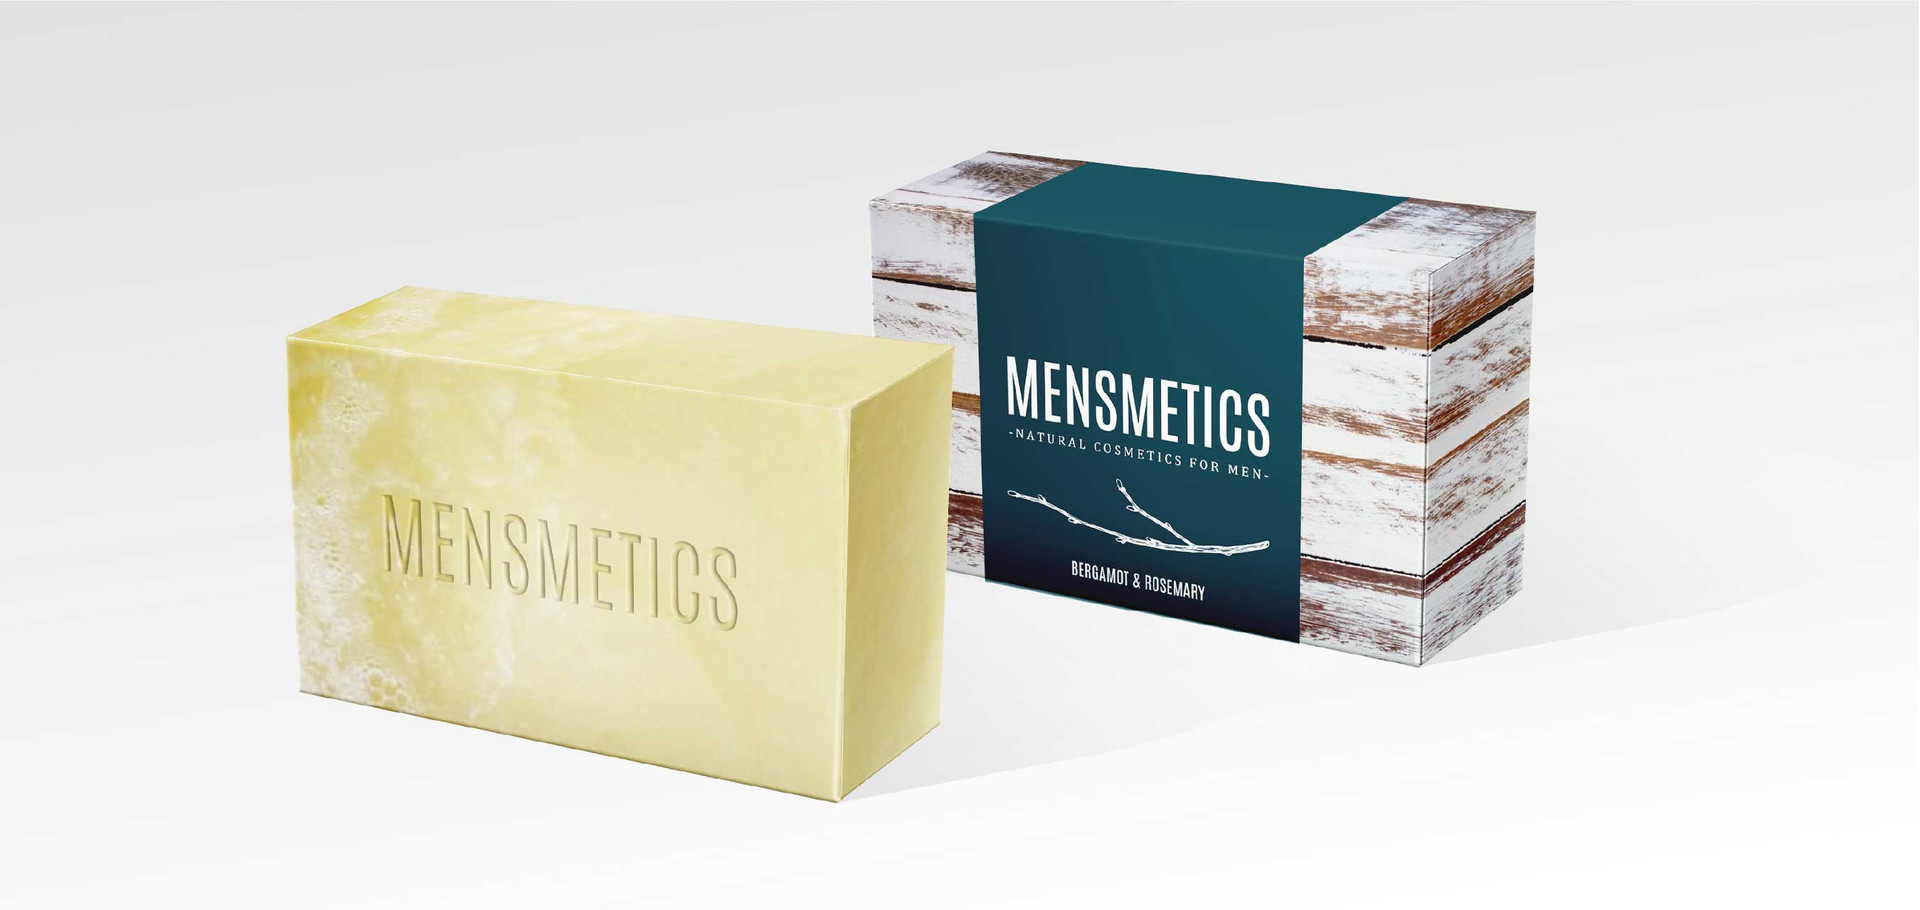 soap imprint and primary package design